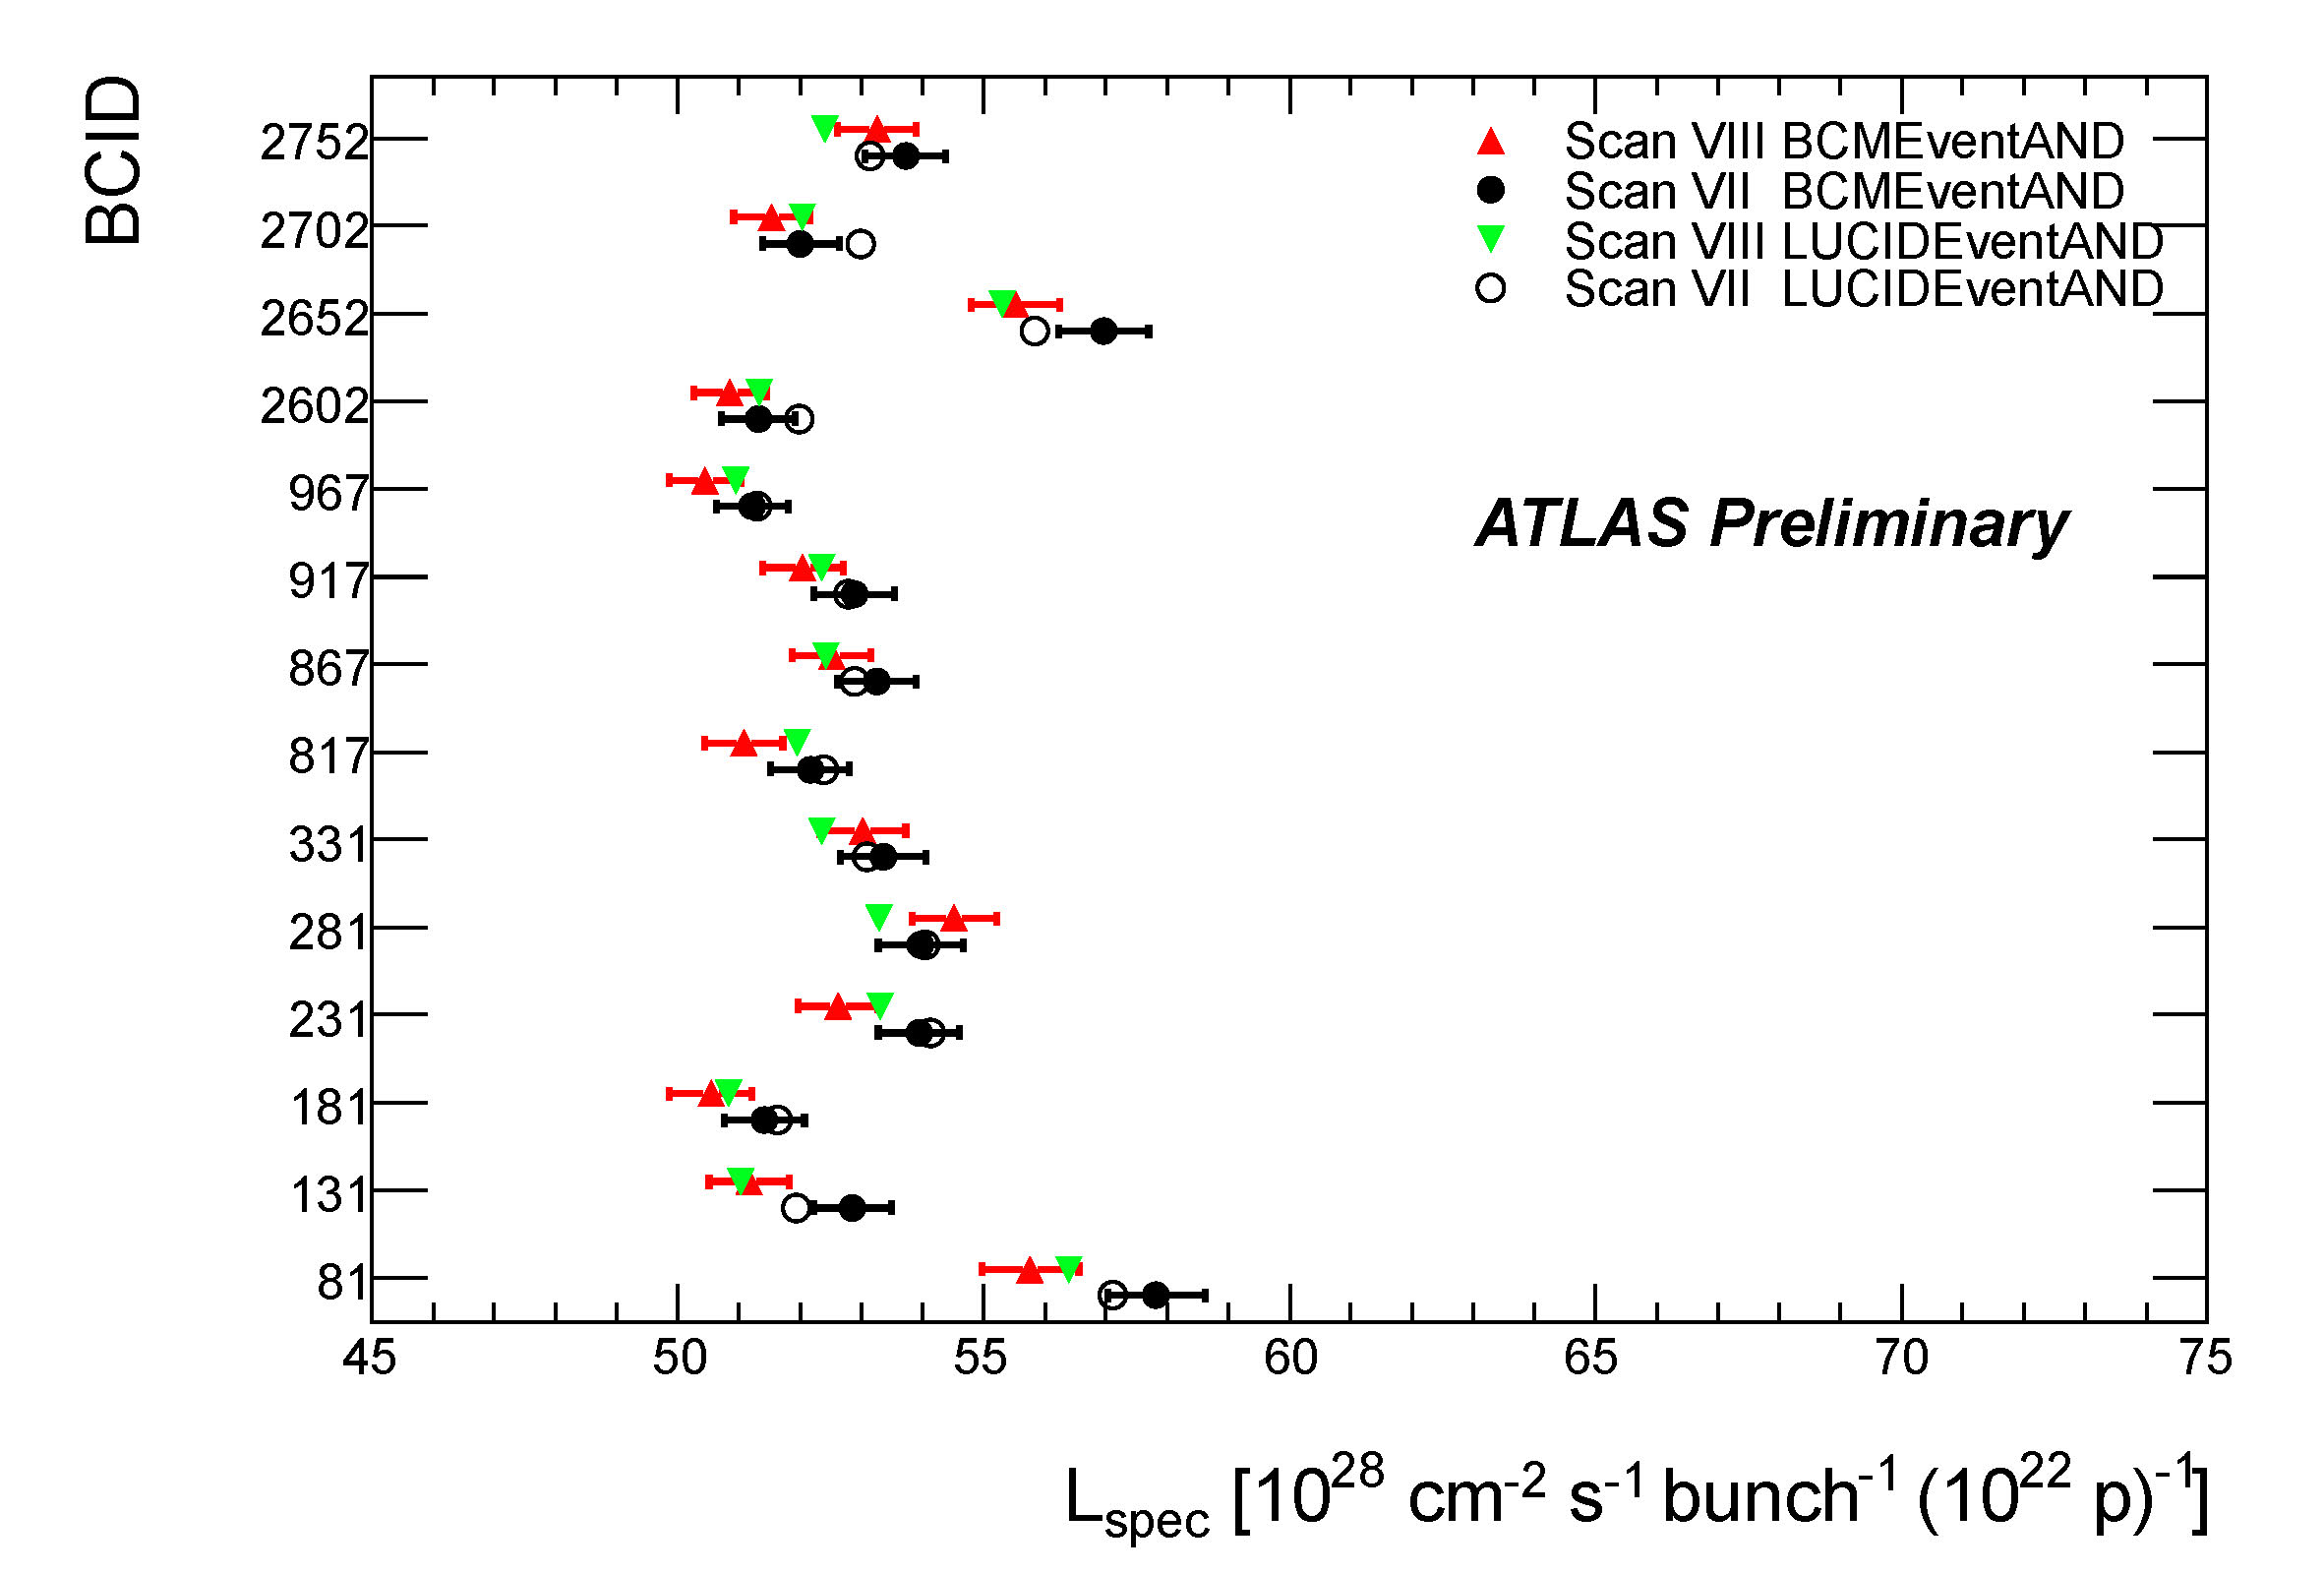 https://atlas.web.cern.ch/Atlas/GROUPS/DATAPREPARATION/PublicPlots/2011/Luminosity/ANDLspecVsLUCID.jpg